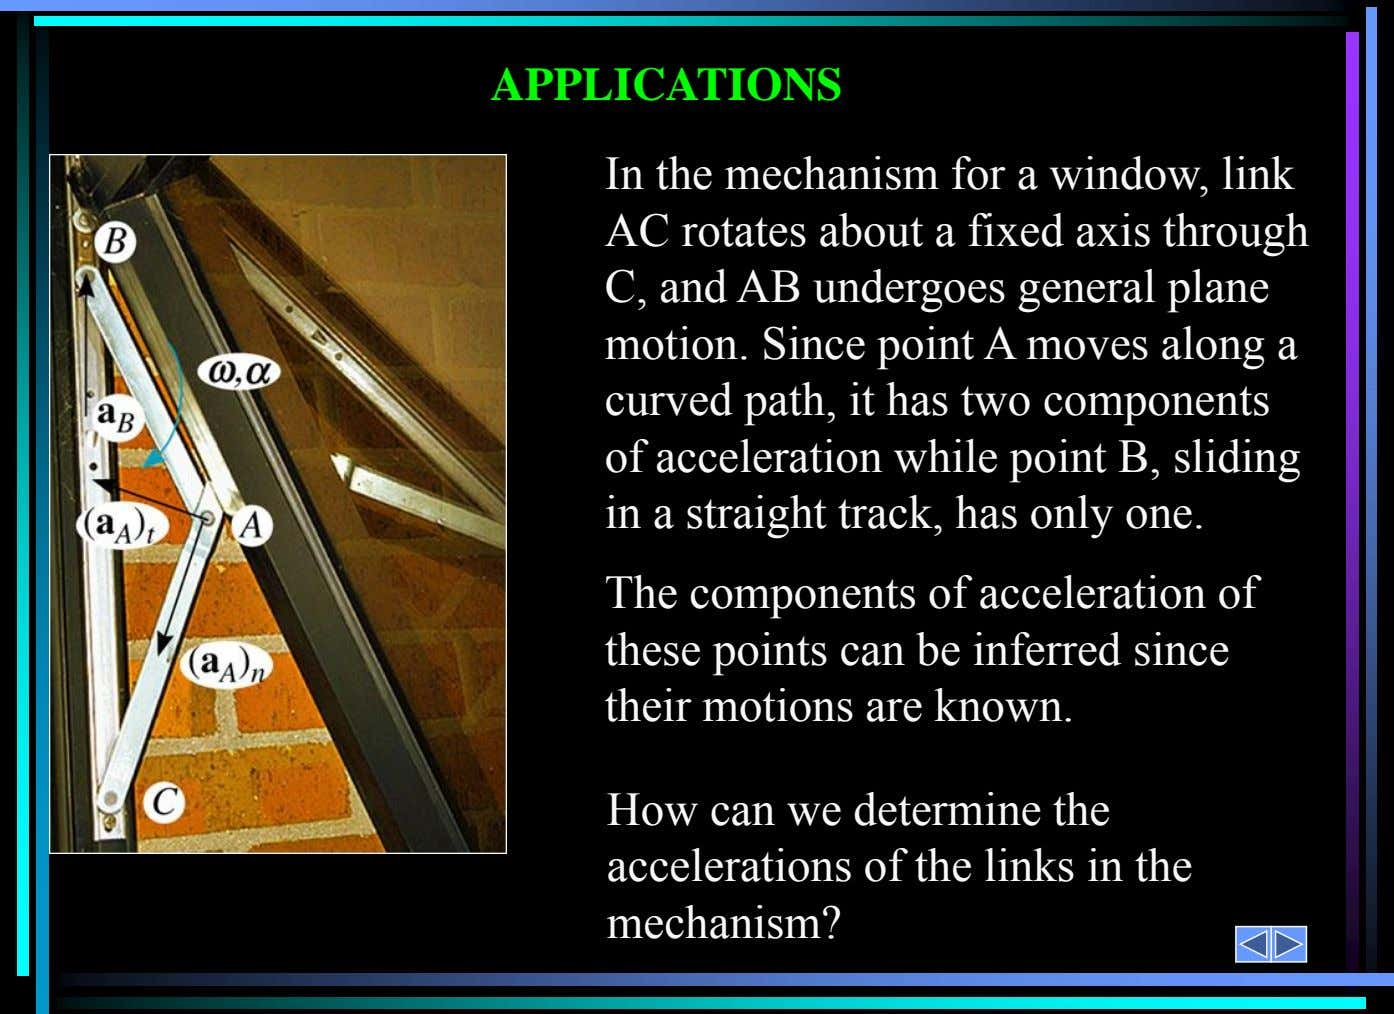 In the mechanism for a window, link AC rotates about a fixed axis through C, and